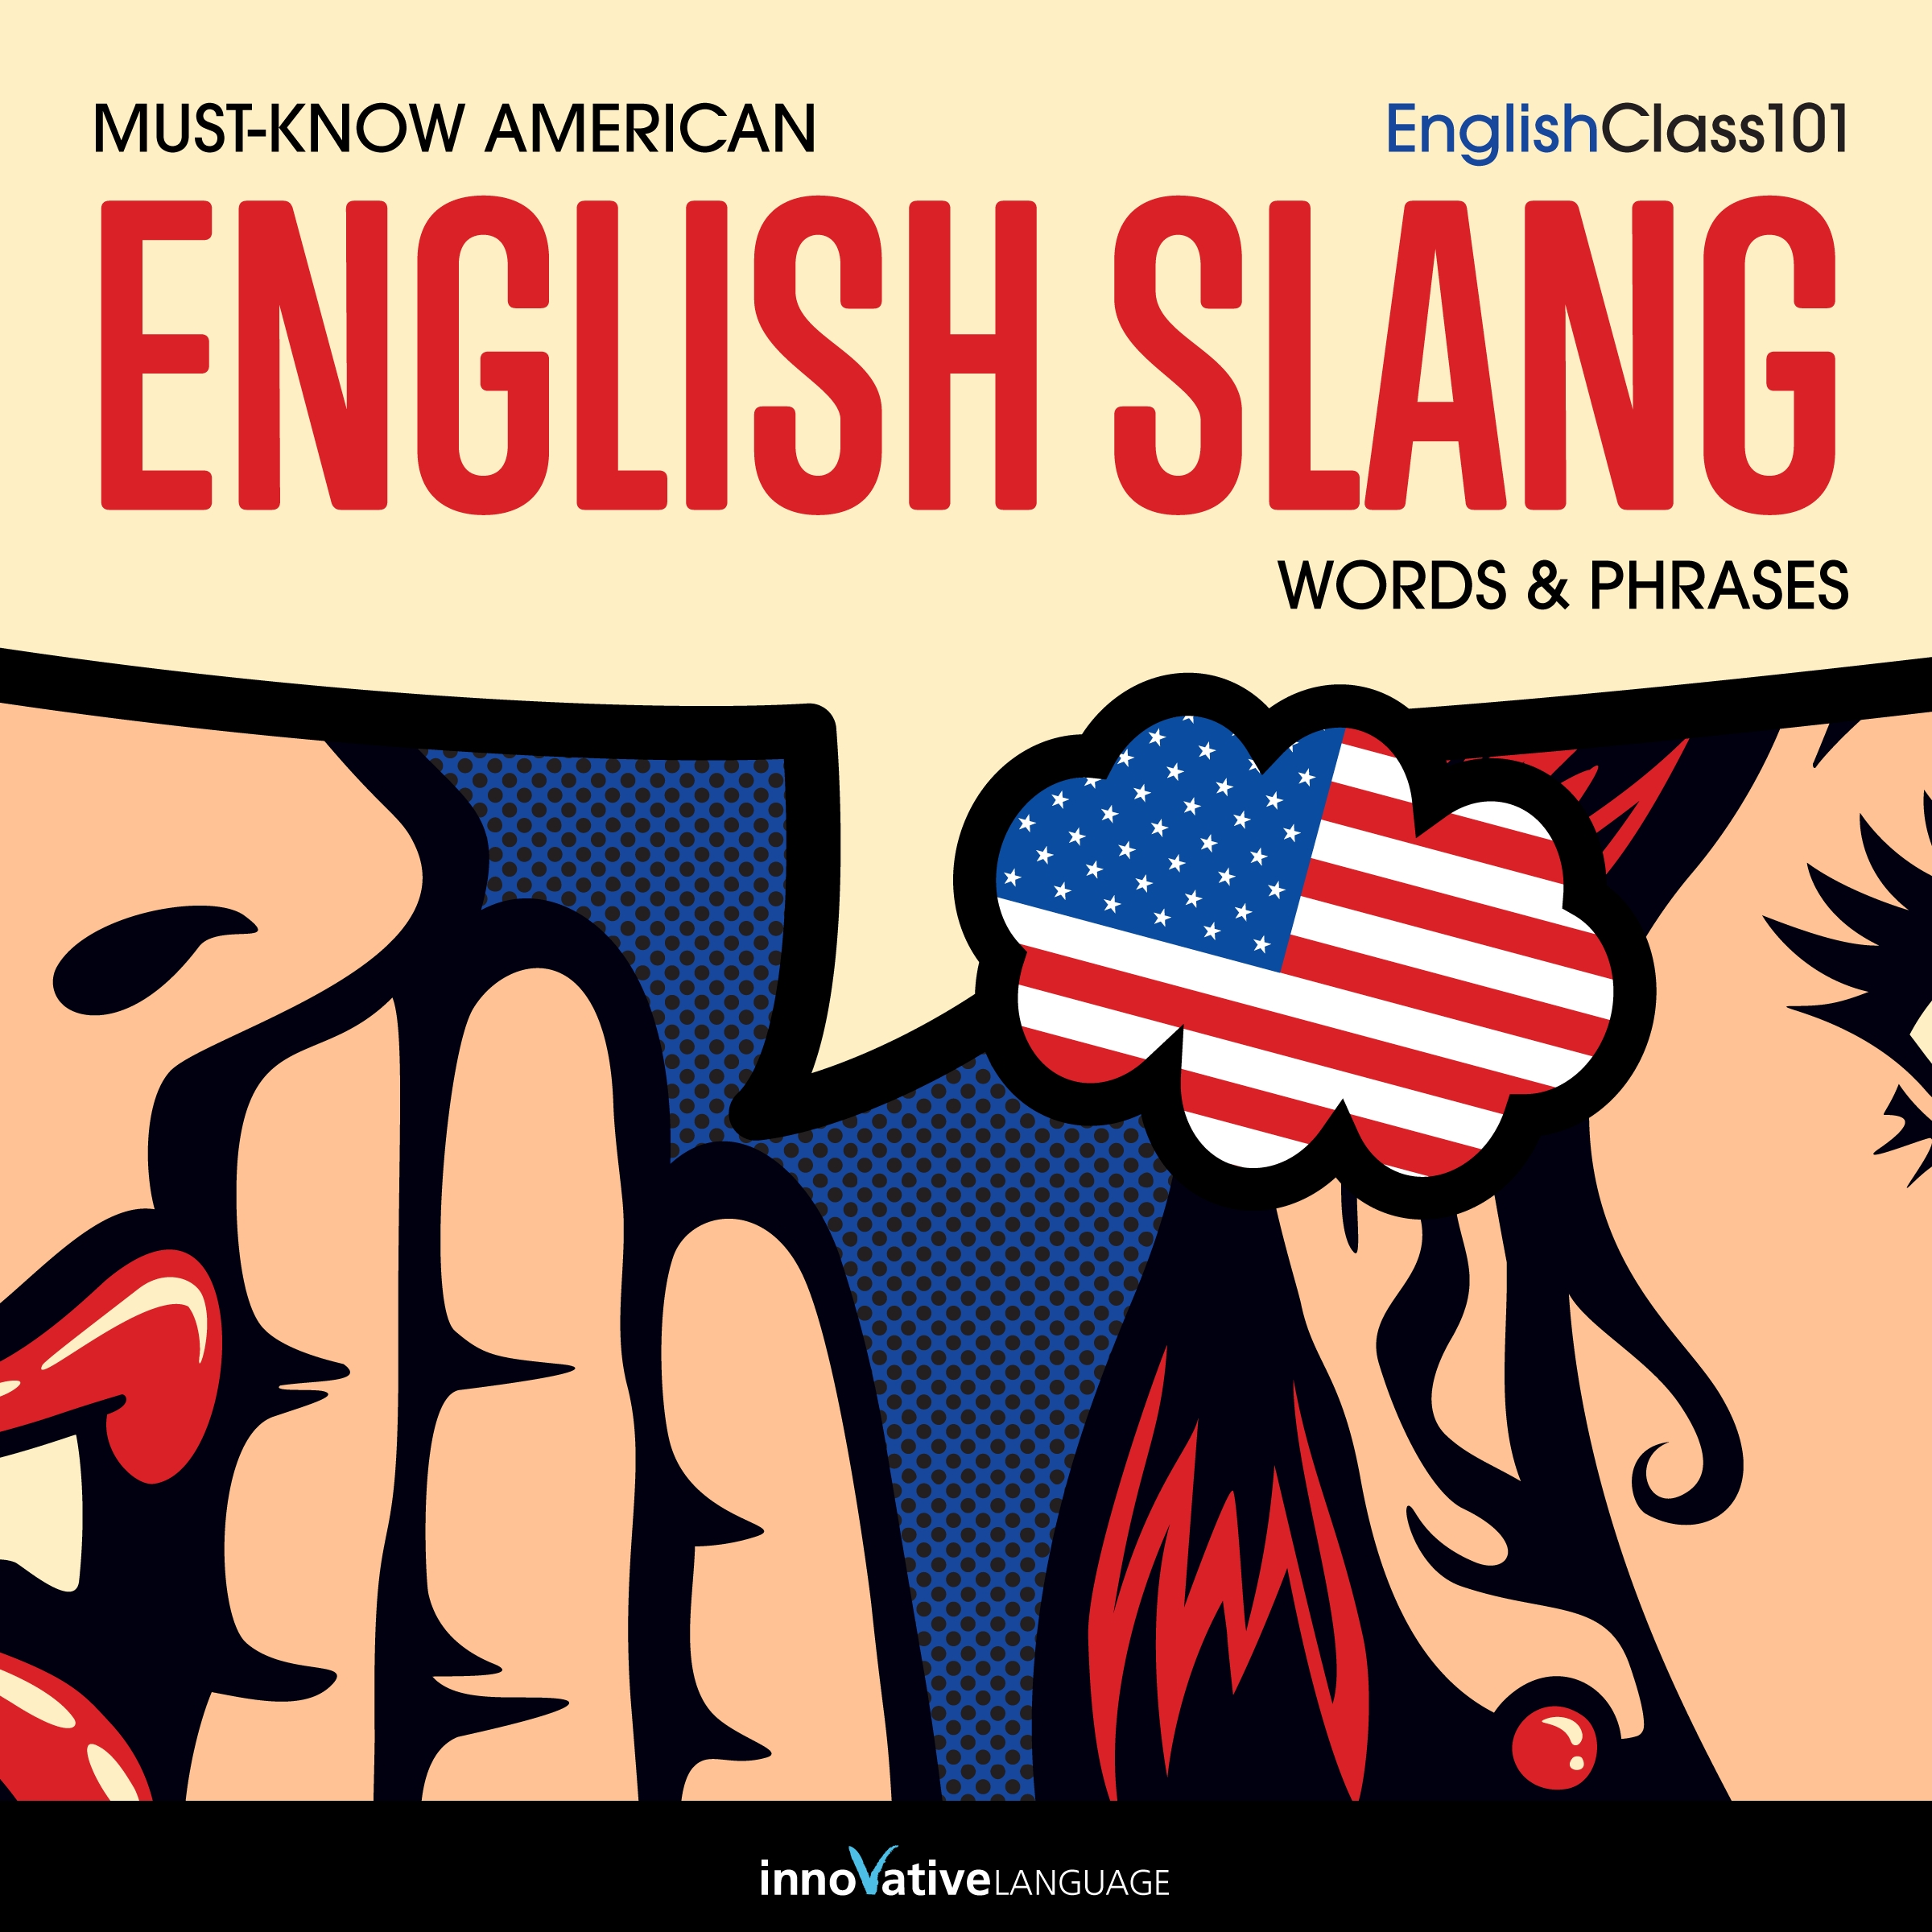 [Audiobook] Learn English: Must-Know American English Slang Words & Phrases